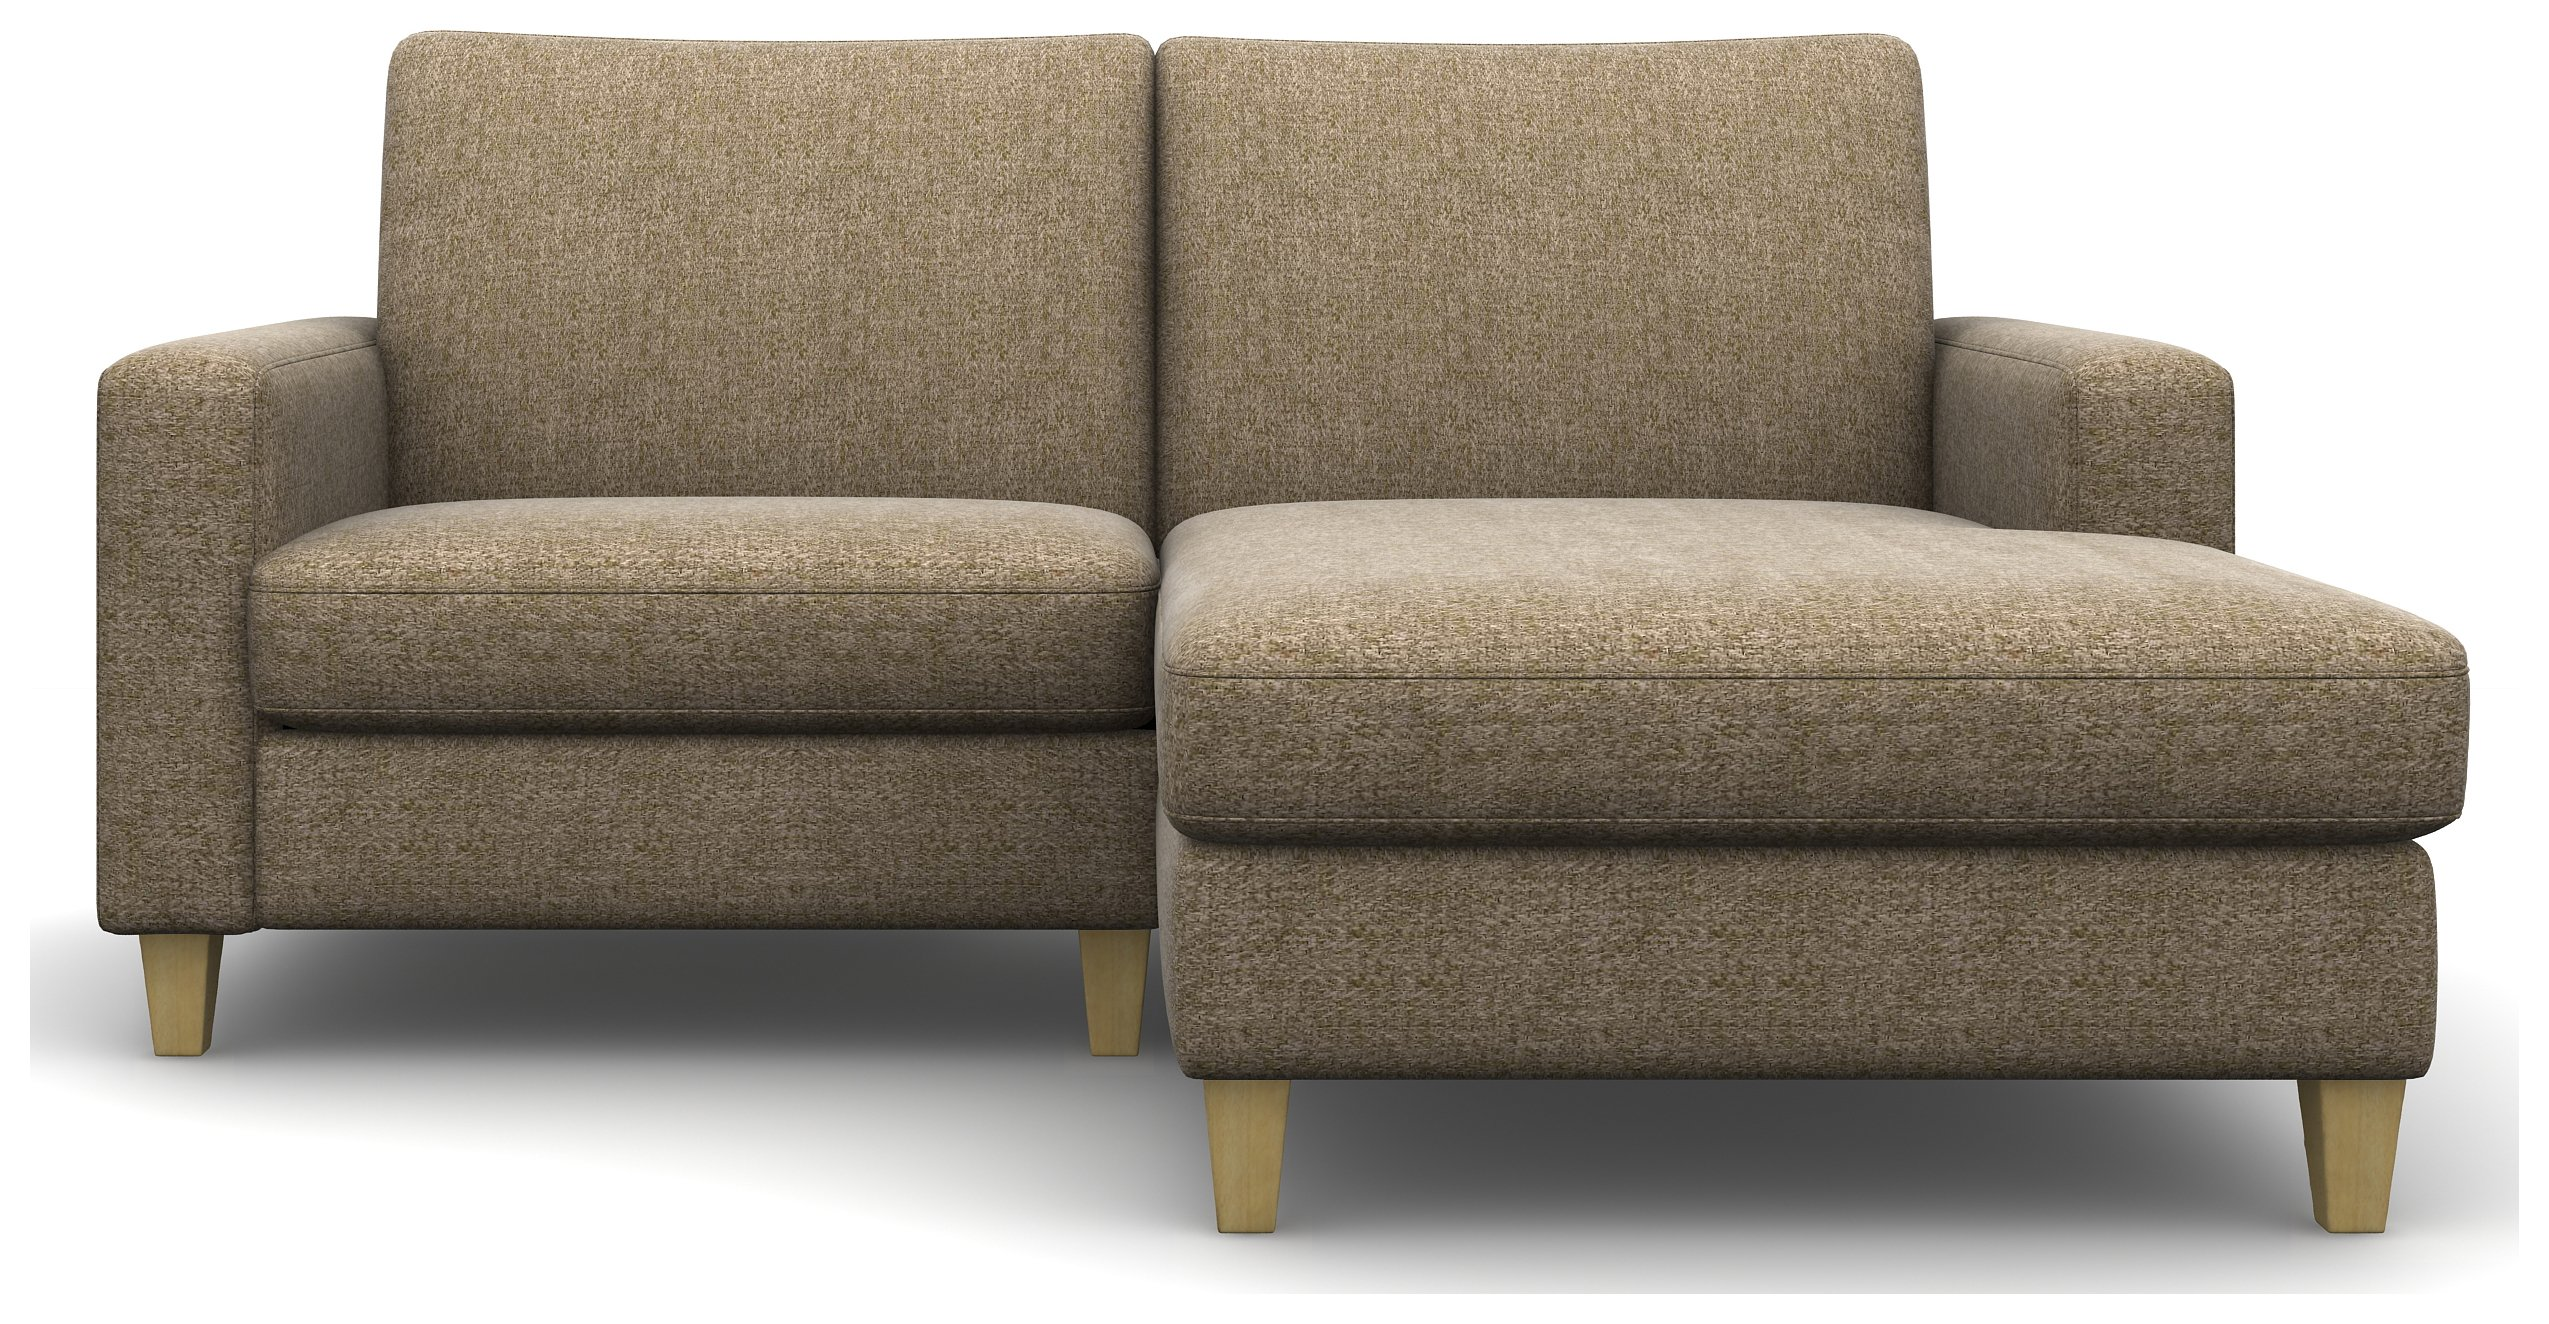 Create Your Own Heart of House Harrison Tweed Fabric Chaise Sofa - Beige.